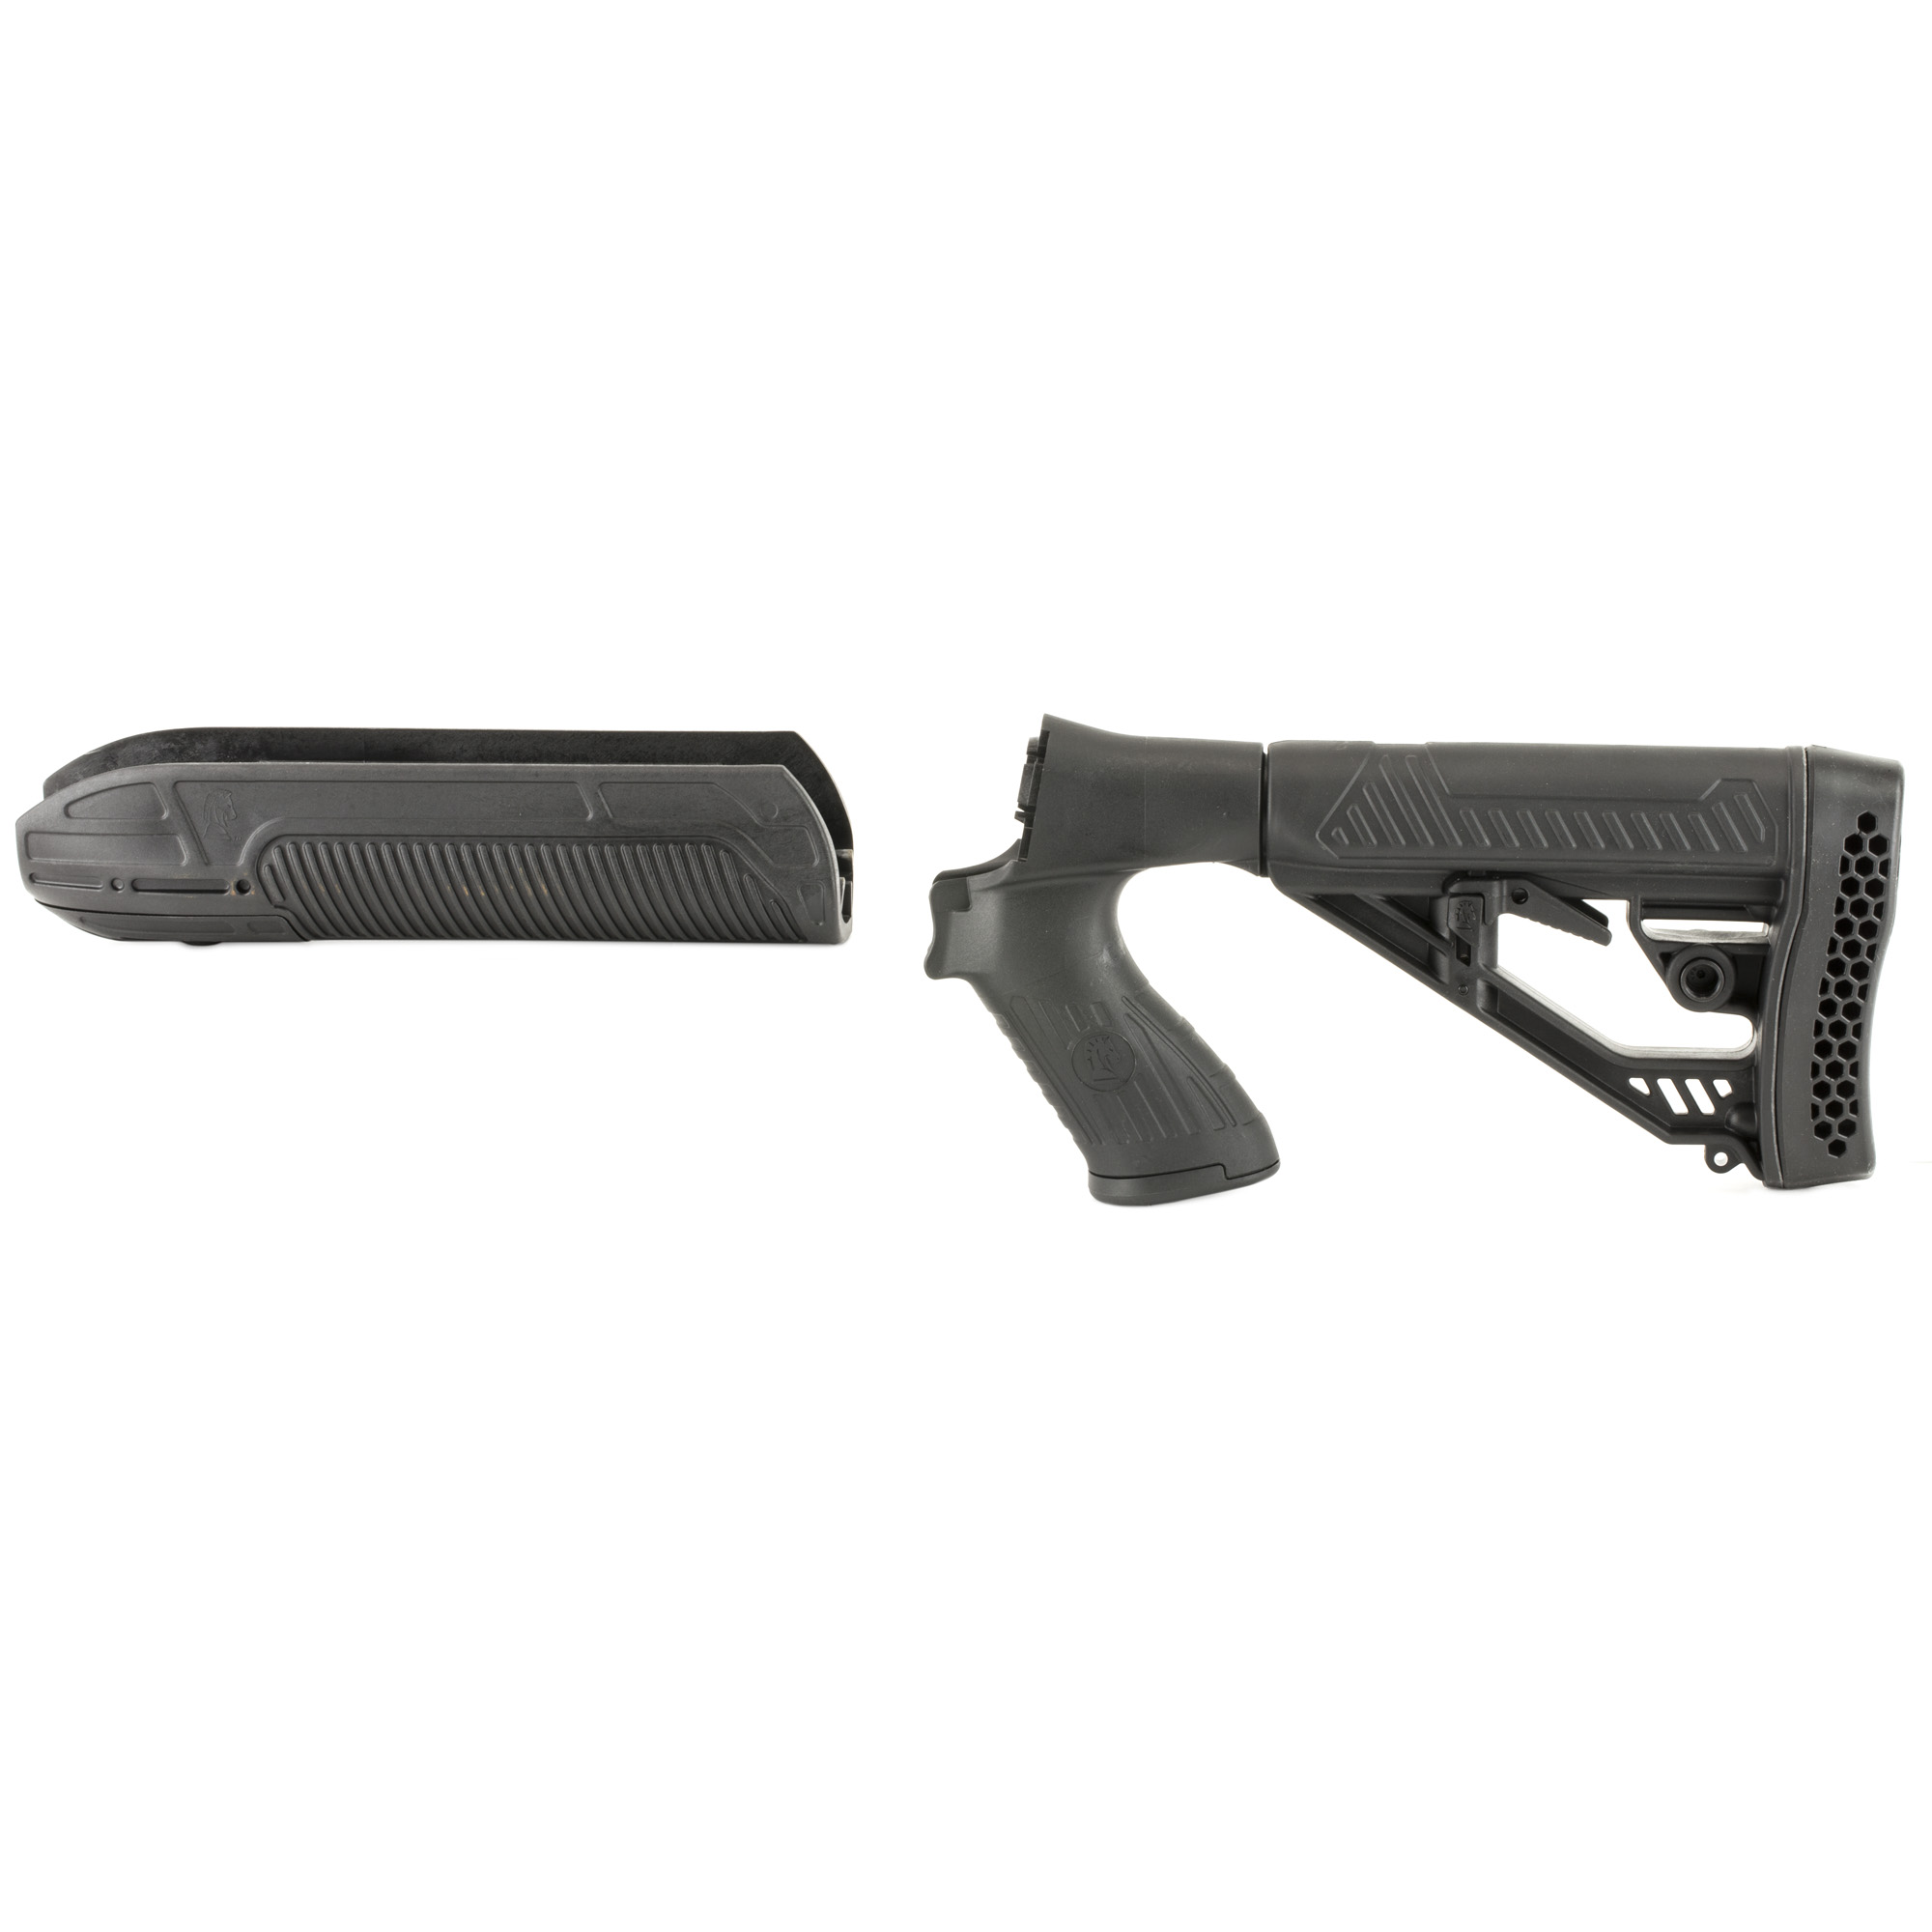 "The Adaptive Tactical Forend and M4-Style Stock for Mossberg Shotguns is optimized for pump shotguns. The advanced design features and high-impact"" polymer construction of the EX Performance Adjustable Stock and Forend make it an ideal choice when upgrading your Mossberg 500 & 88*"" 590 series 12g pump shotgun.The EX Performance Forend features a 2 inch picatinny rail concealed under the nose cap. Uncovered it's ideal for attaching tactical accessories like lasers or lights.The EX Performance M4-style Stock with pistol grip features an easy-to-reach rapid adjust lever for custom length-of-pull"" and includes an integrated QD swivel attachment and molded in non-rust standard sling swivel attachment. Durable polymer construction with non-slip vented rubber recoil pad"" oversized extra strength adjustment pin"" and sleek industrial design."